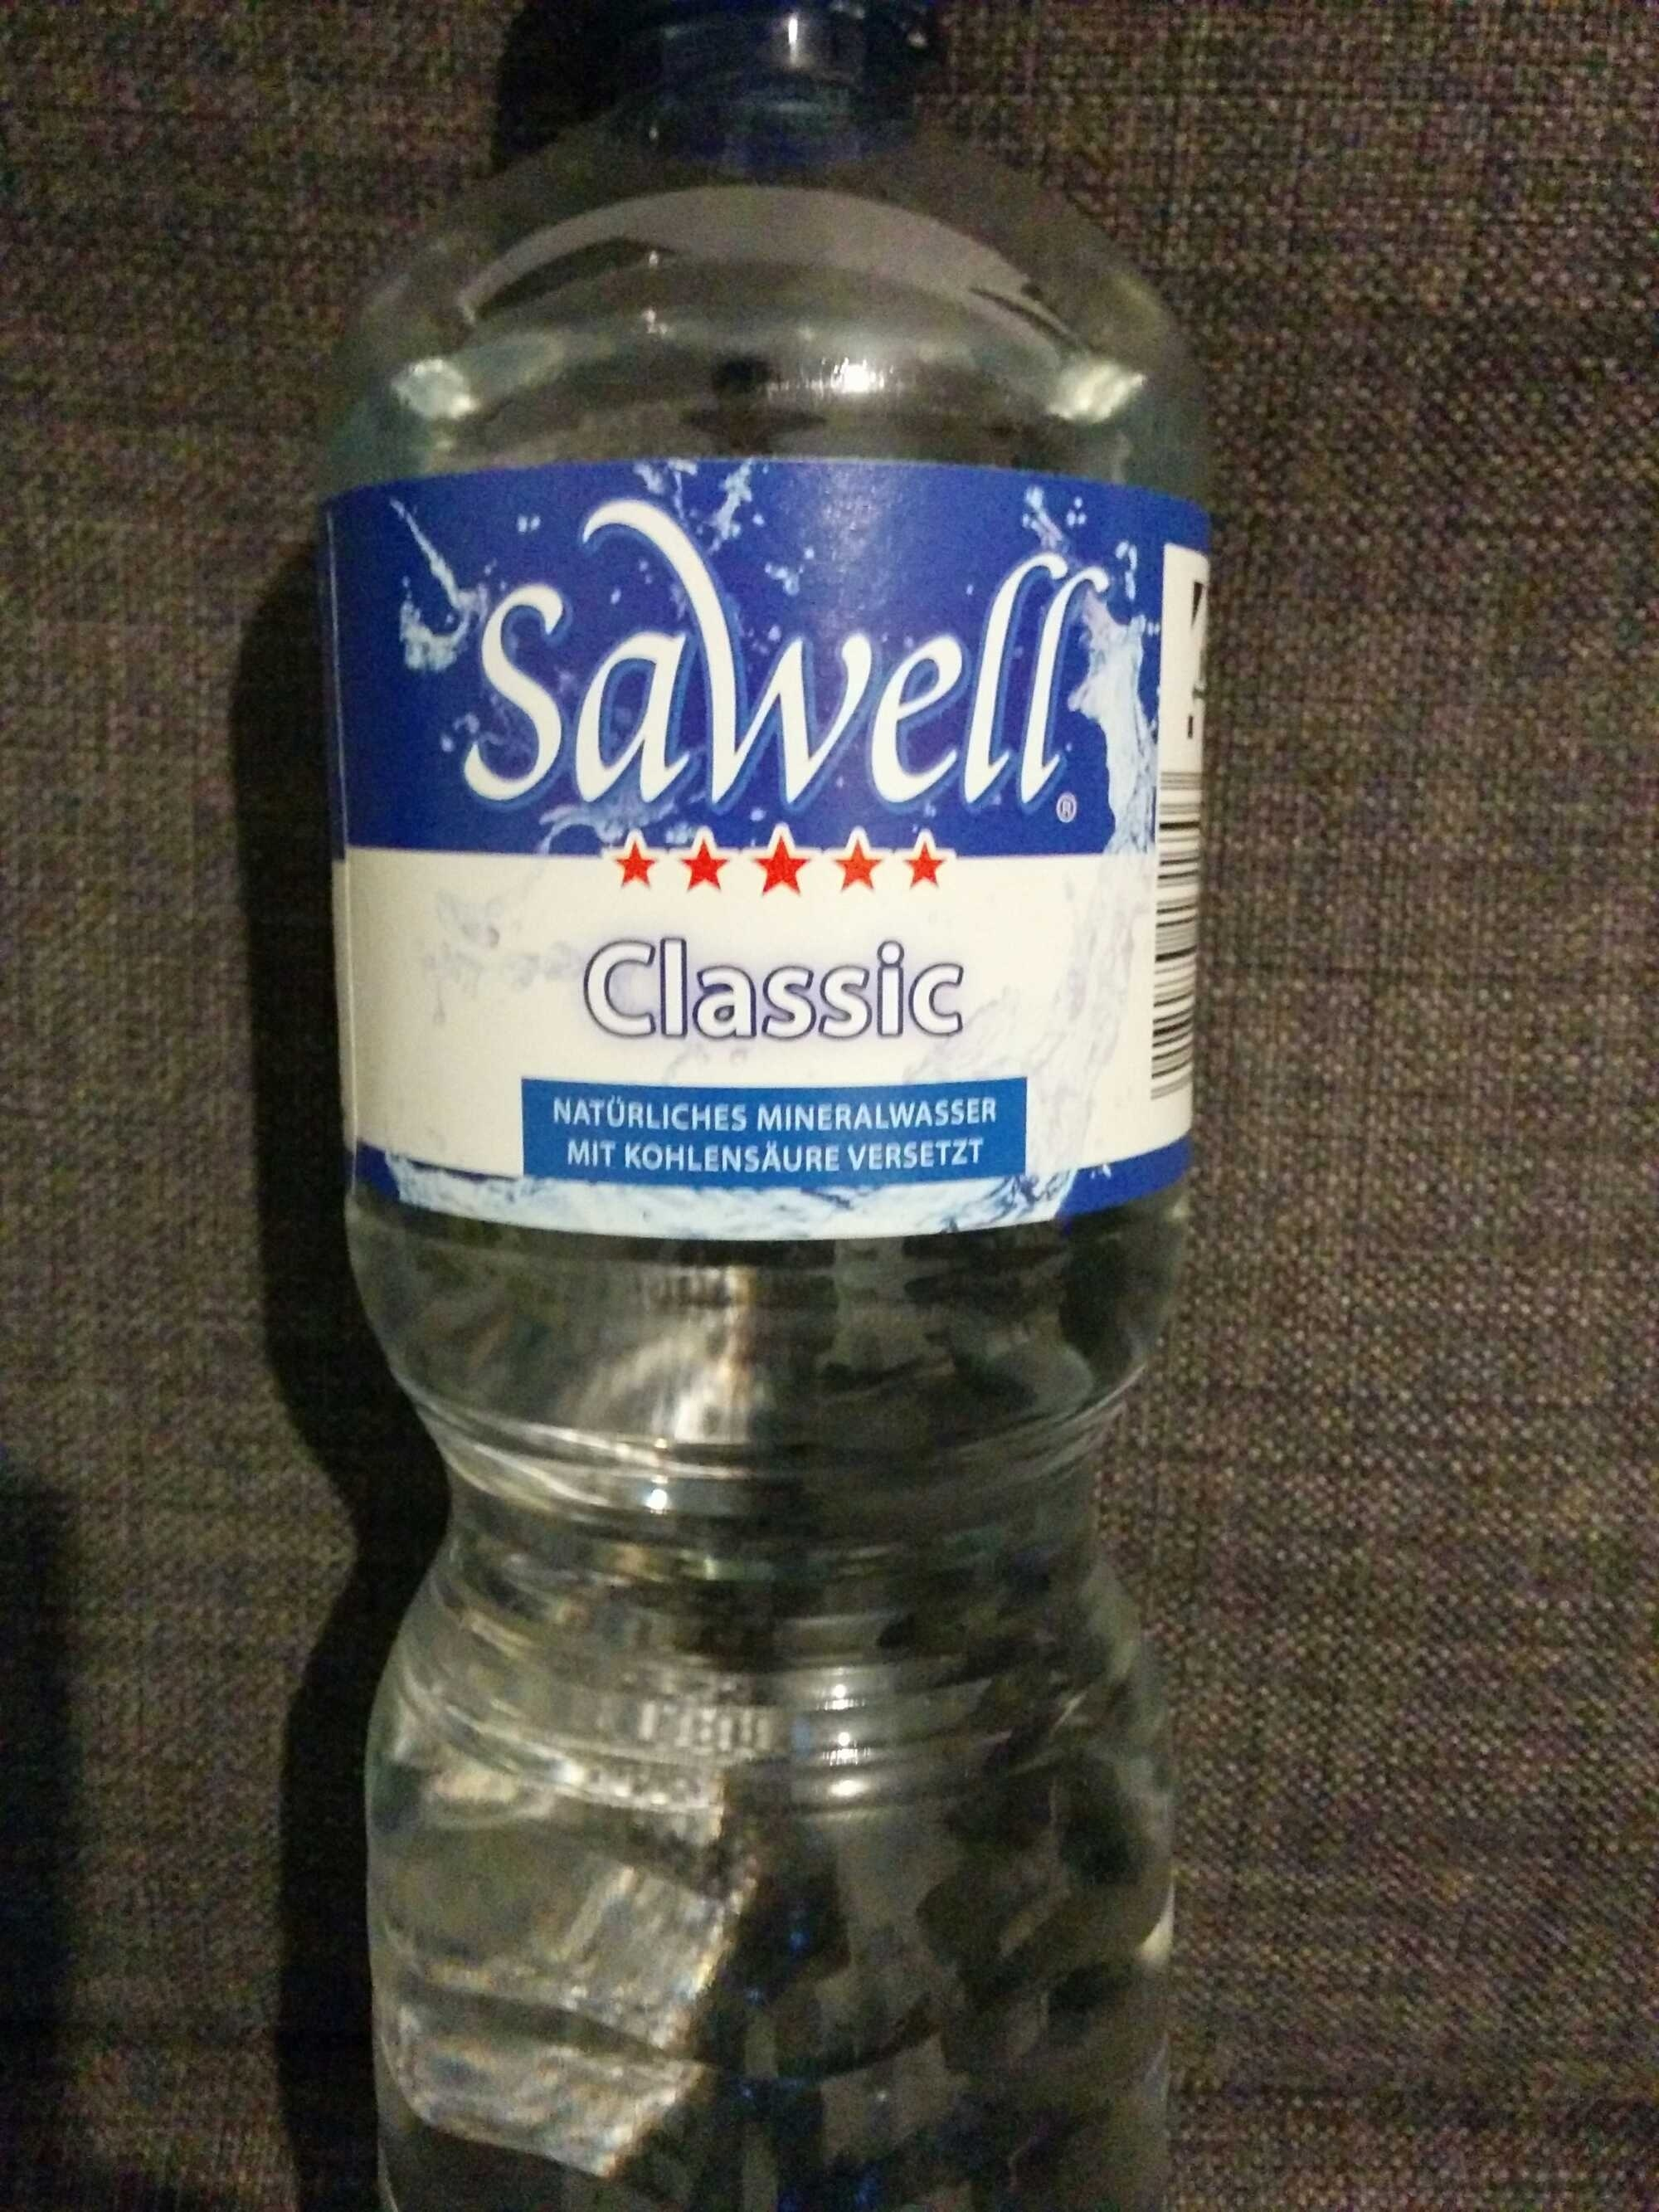 Sawell Classic - Product - de